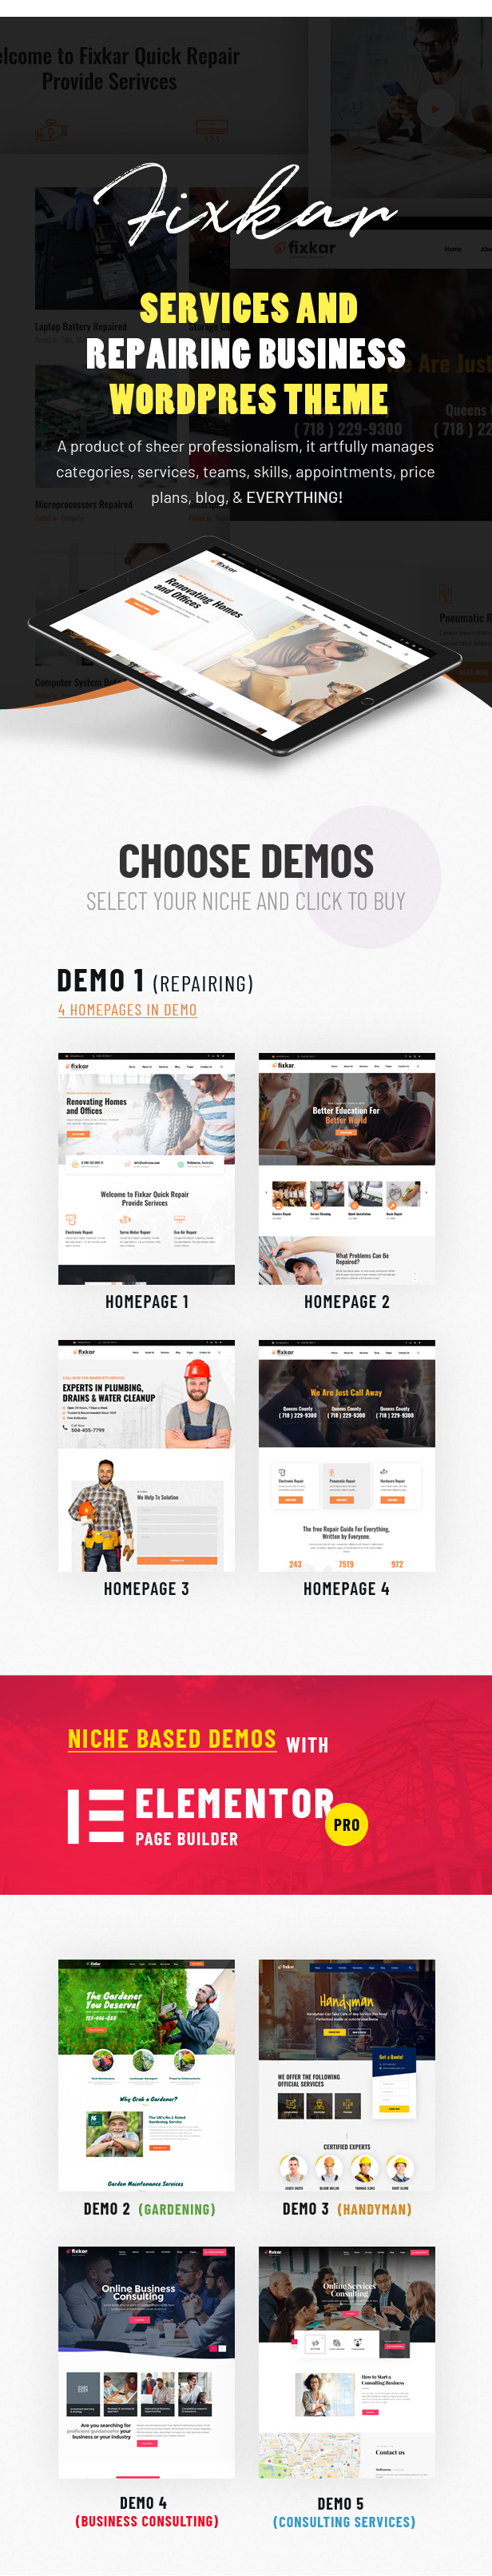 FixKar - A Services WordPress Theme - 1